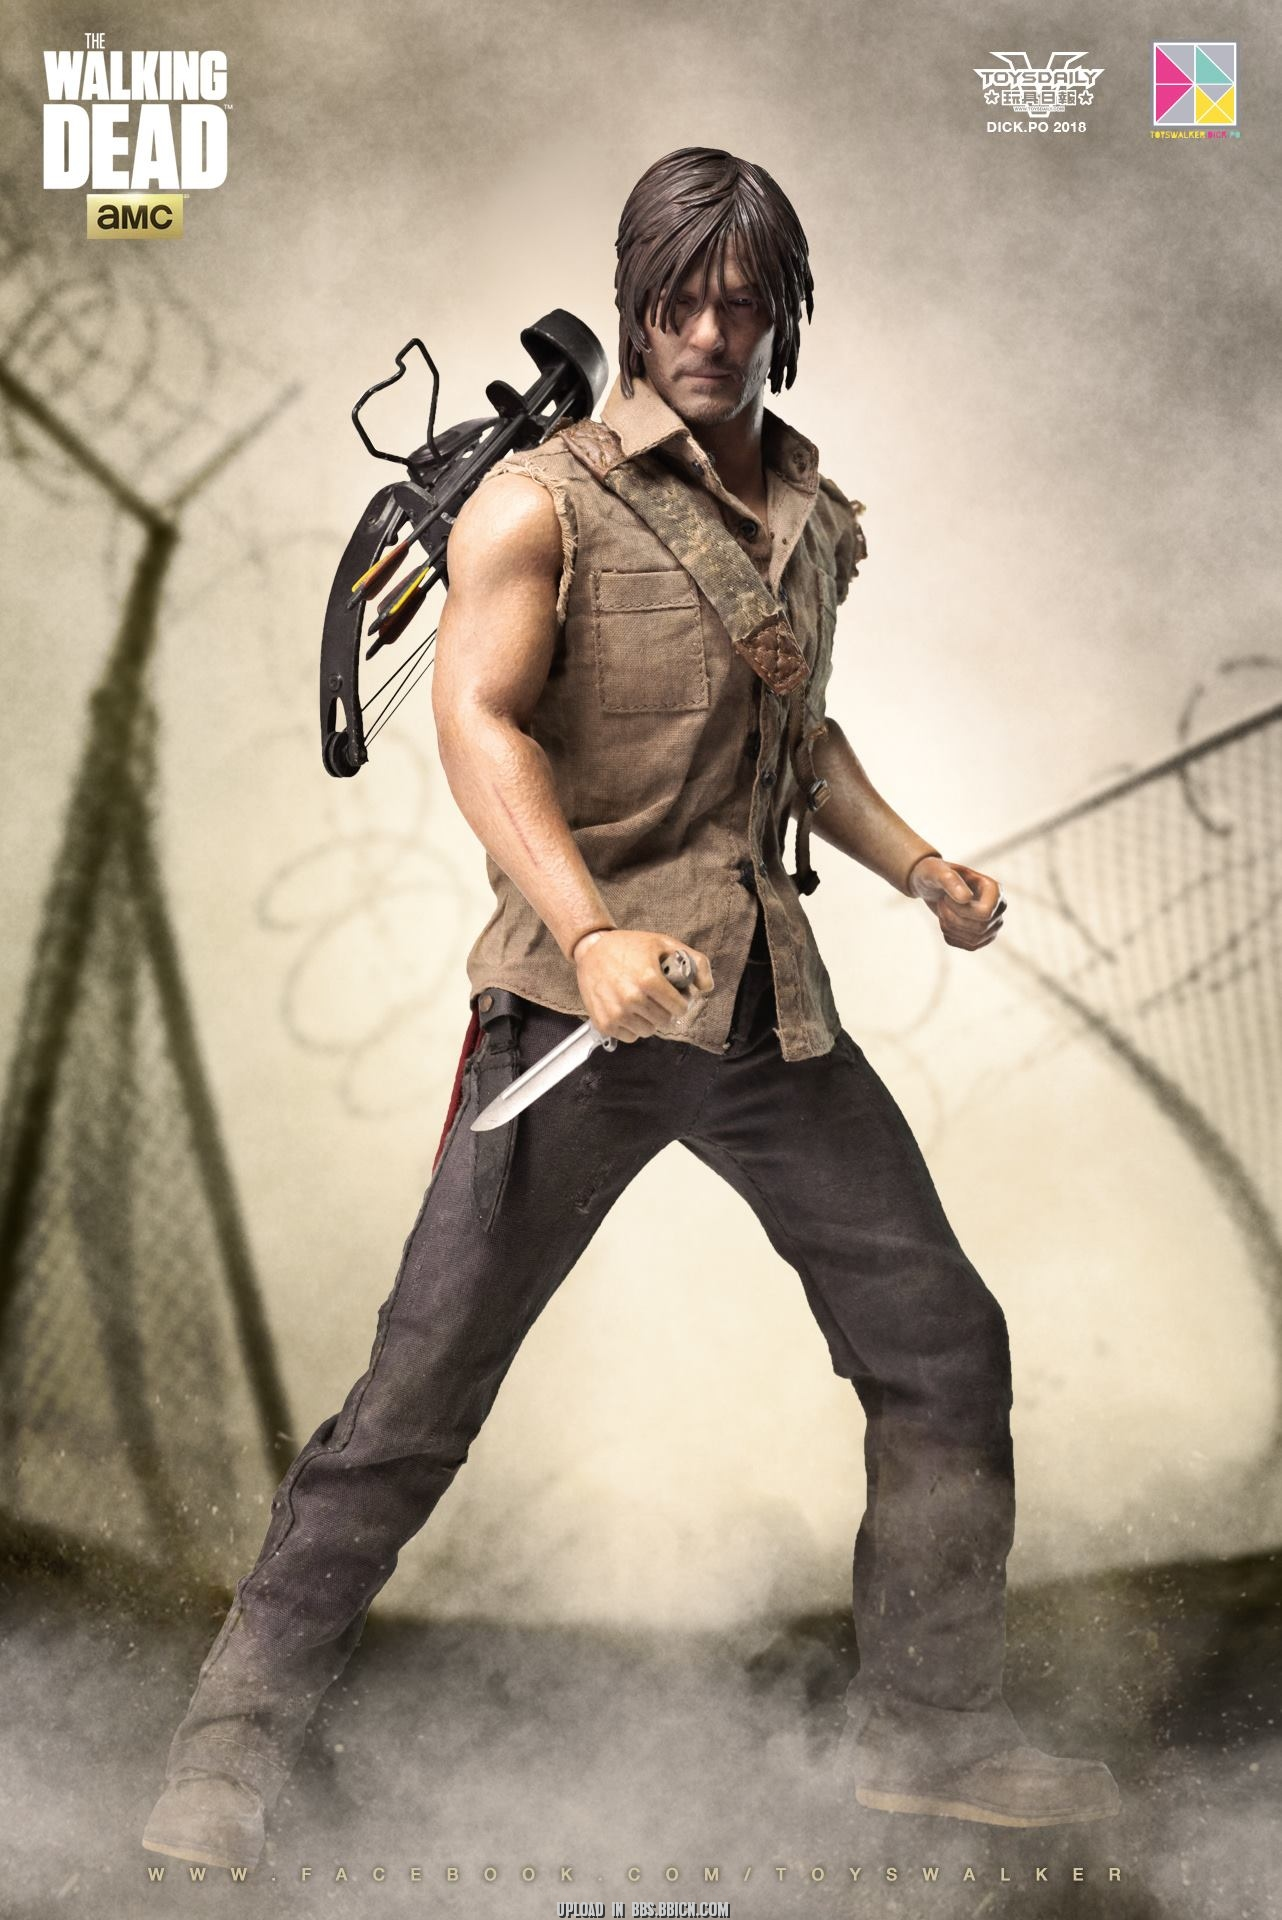 The Walking Dead Daryl Dixon4.jpg